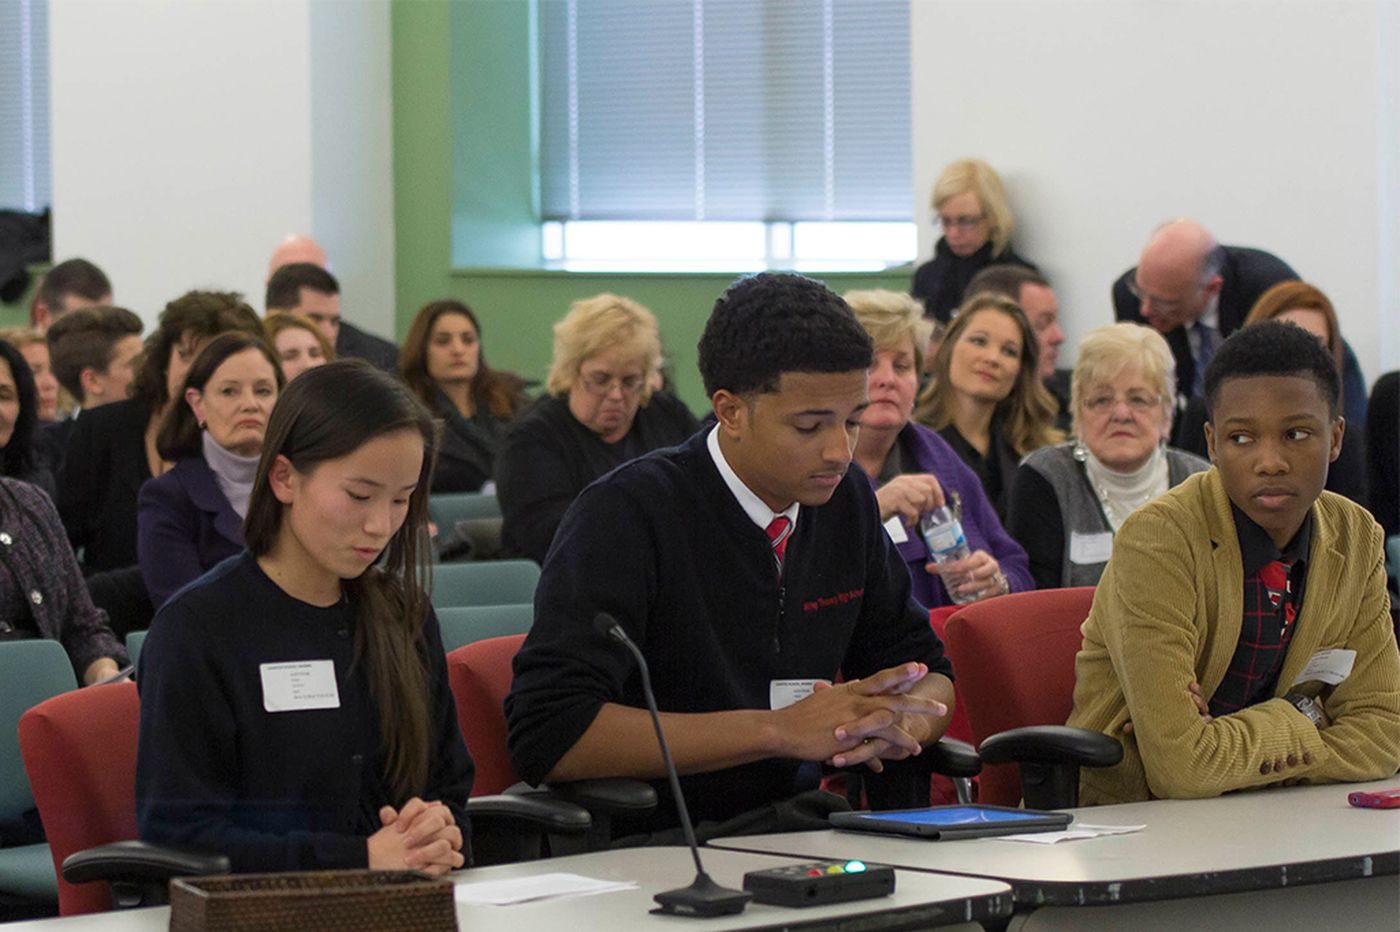 Charter operators pitch the schools they would open